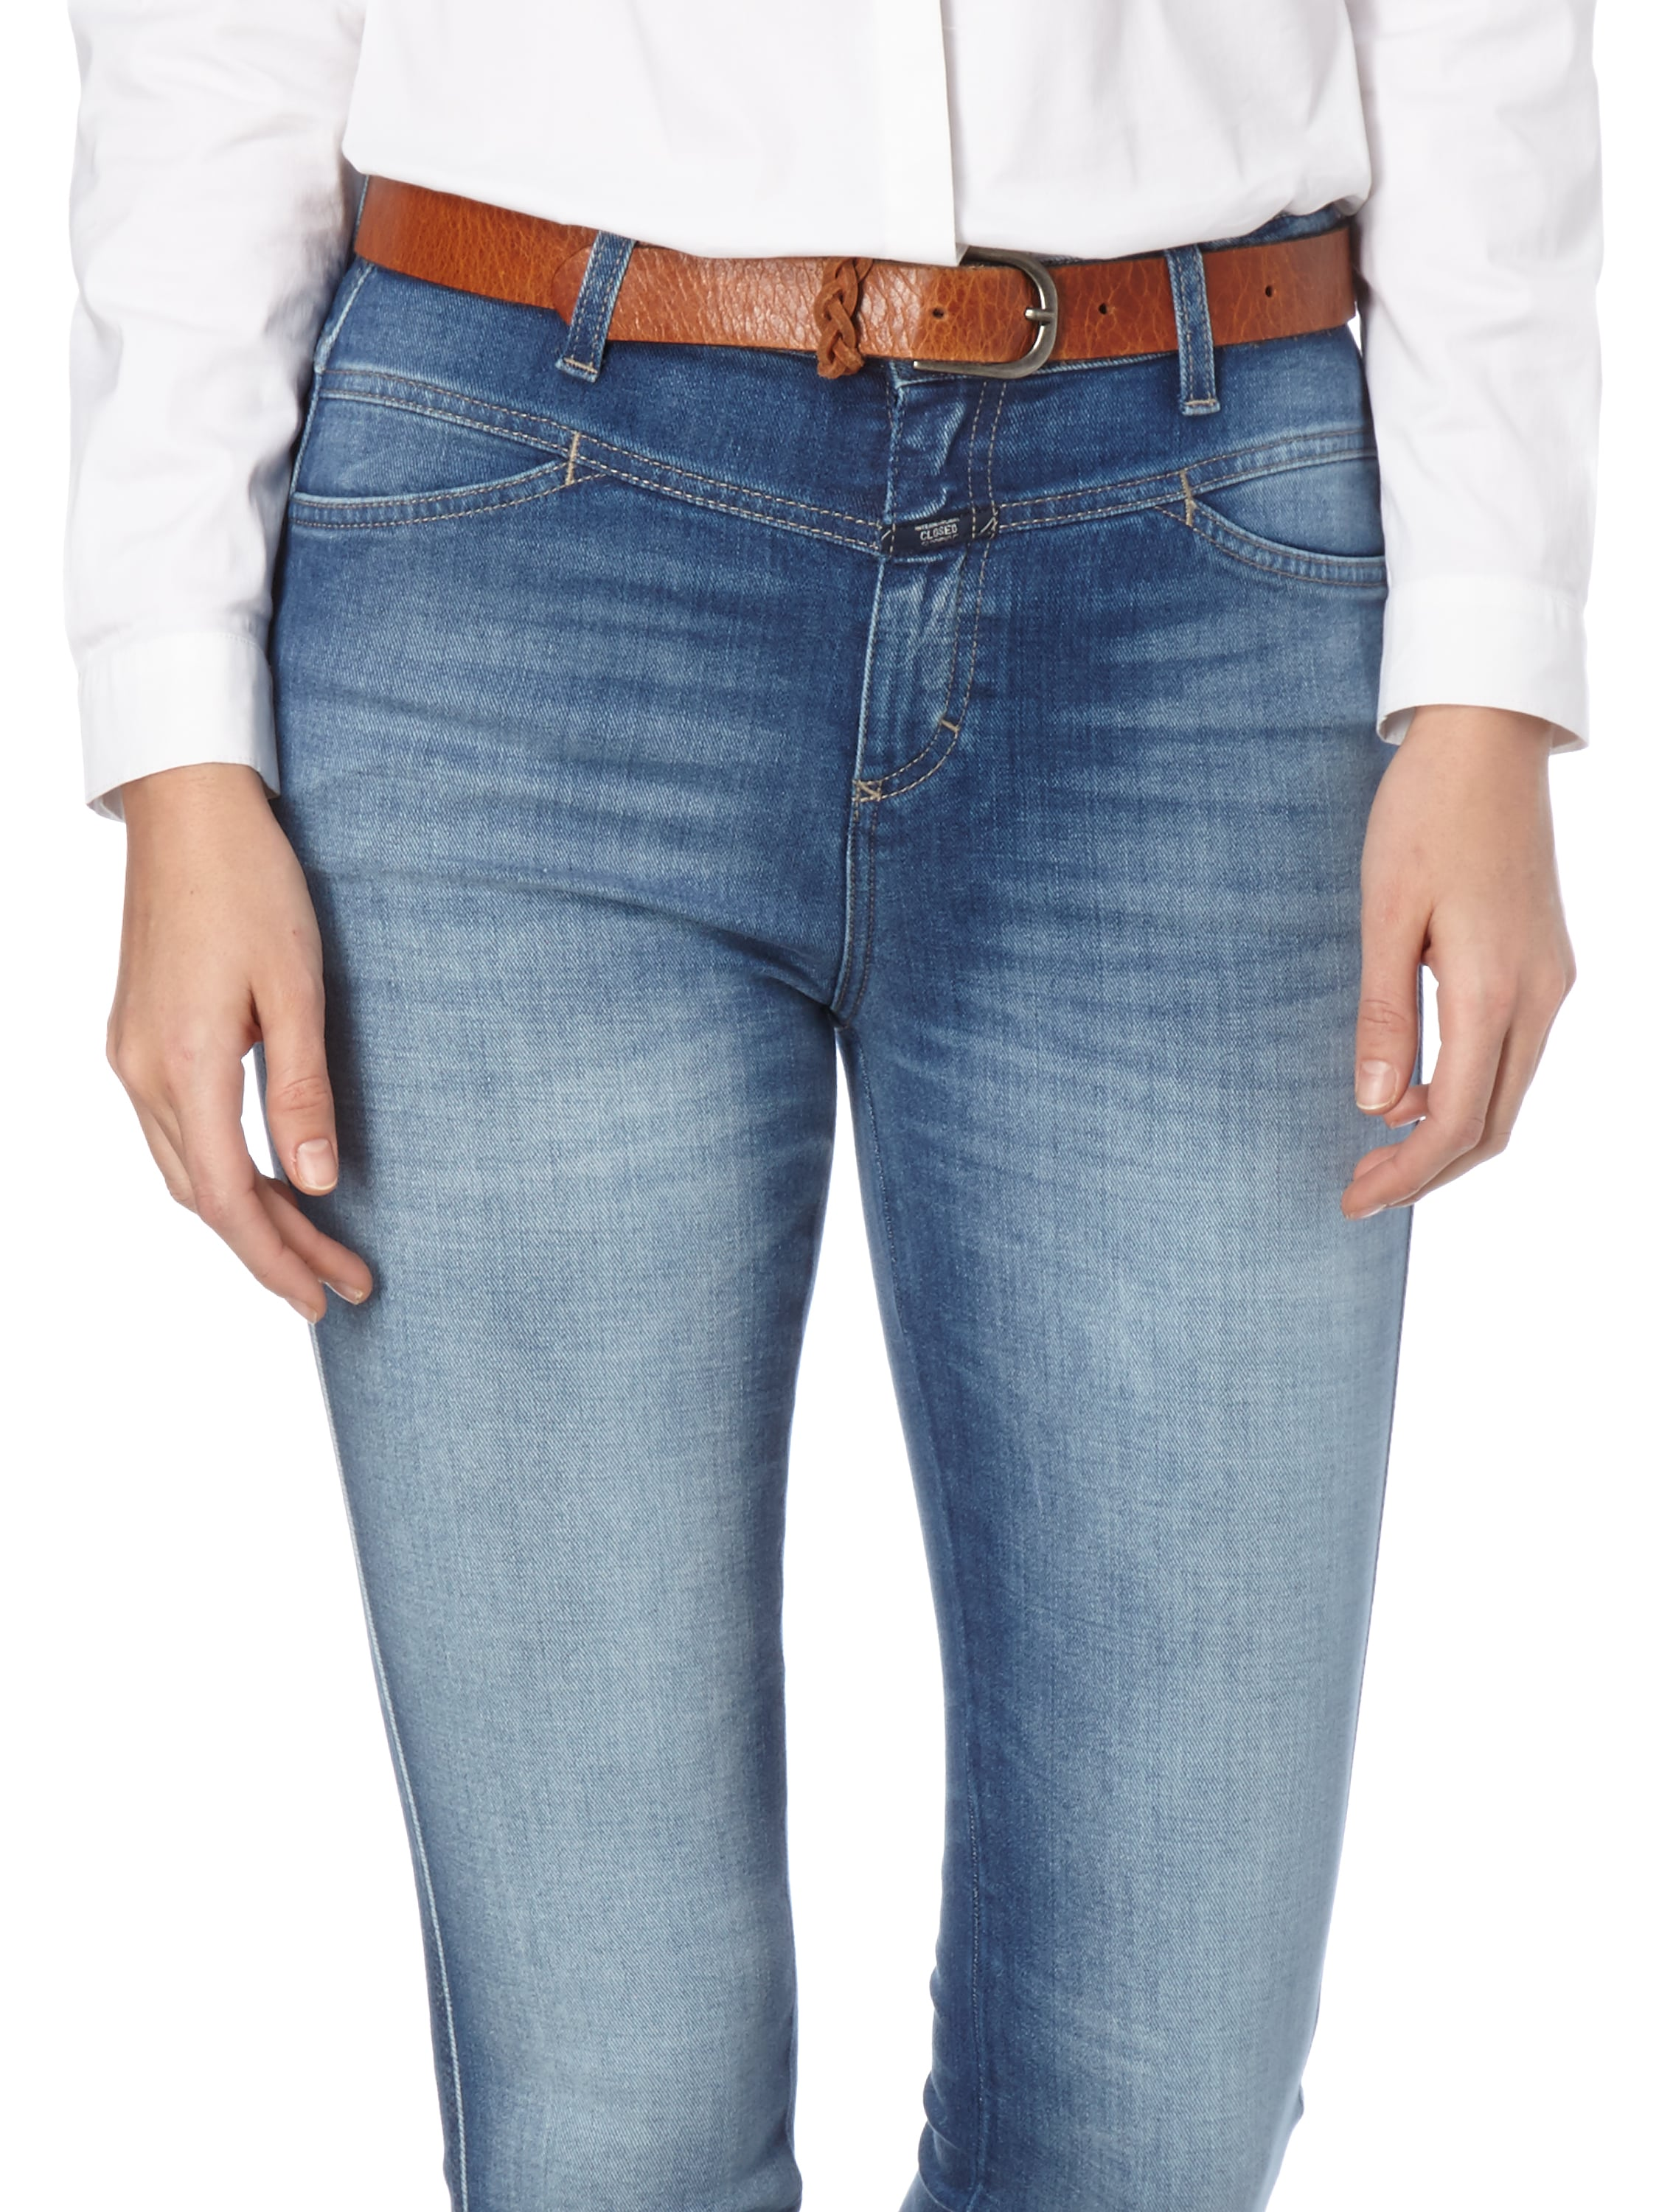 New Listing American Apparel High Waist Mom Jeans Med Stone Washed 26W Very Nice Pre-Owned. Pre-Owned. $ Buy It Now +$ shipping. Benefits charity. Linea Uomo Mens Relaxed Straight Fit Black Stone Washed Jeans Pants Size 48x Linea Uomo · .